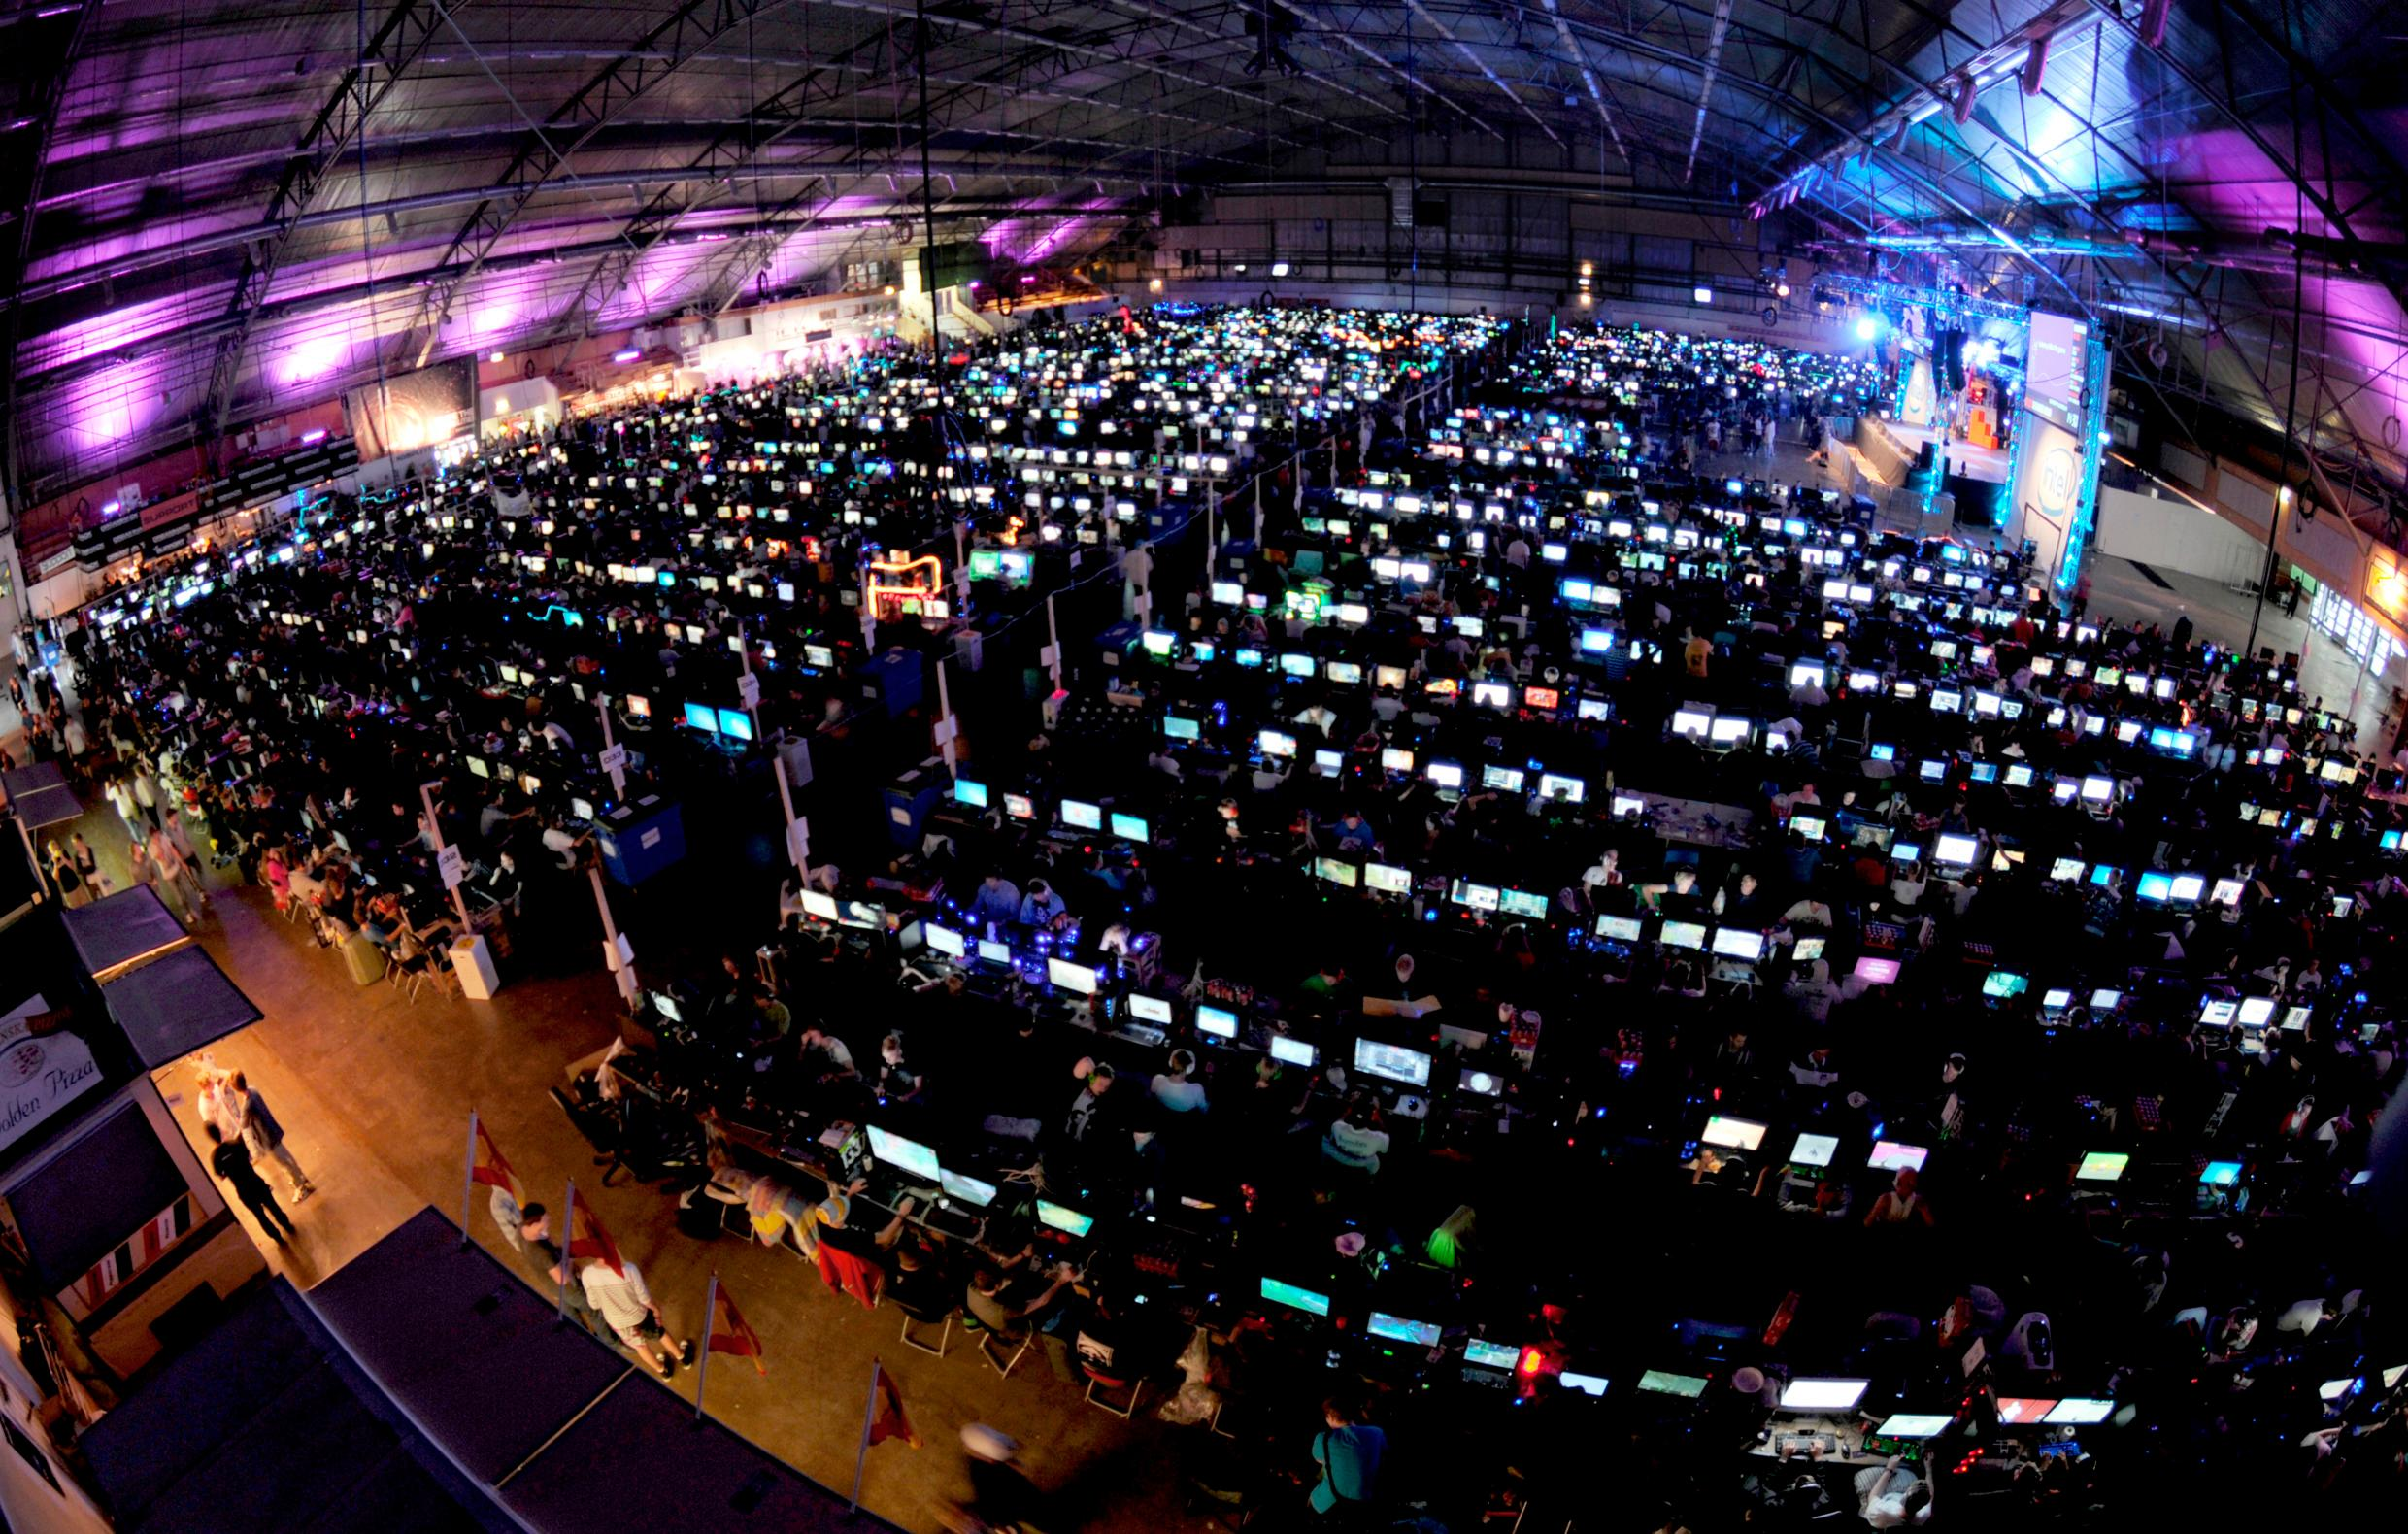 A huge arena filled with lit up computer screens.